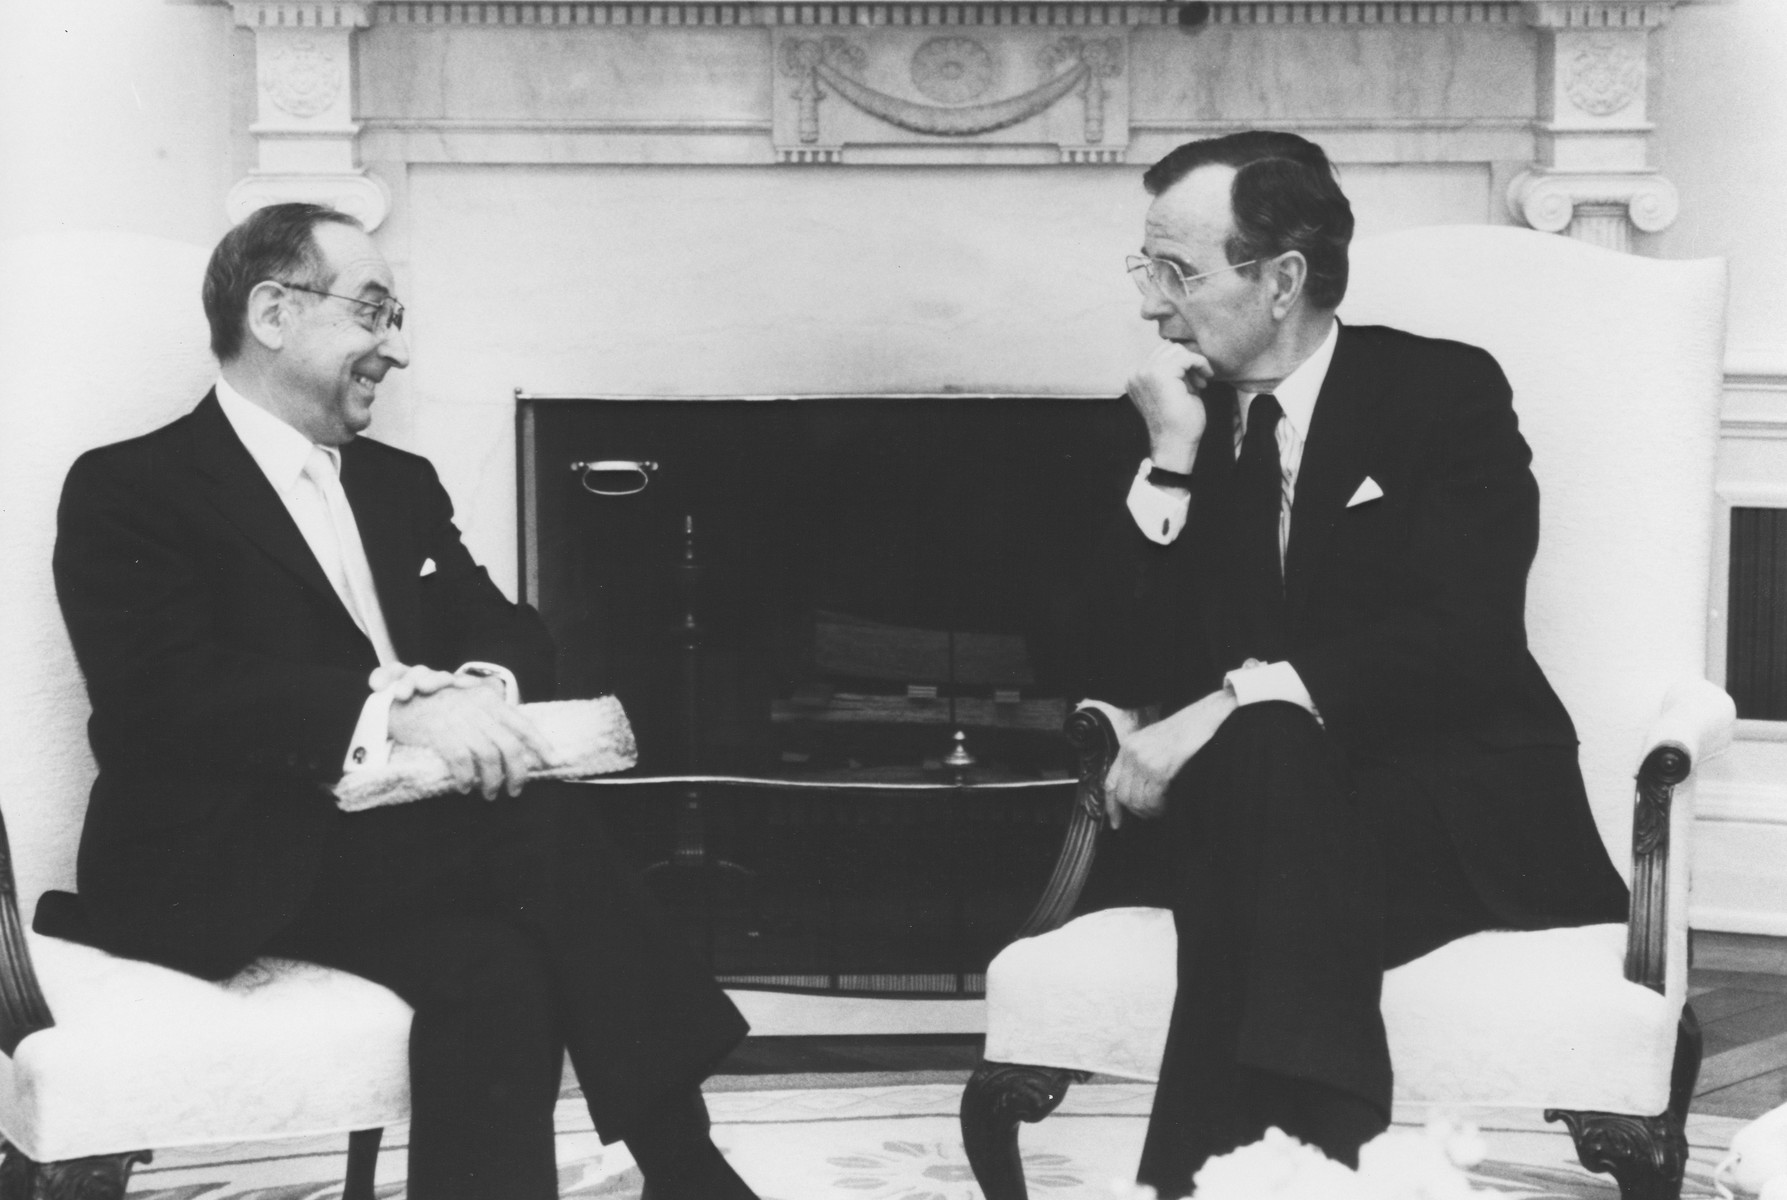 US Holocaust Memorial Council Chairman Harvey Meyerhoff in conversation with President George H.W. Bush at the White House.  Members of the U.S. Holocaust Memorial Council met with President George Bush on the occasion of the 1989 Days of Remembrance for the Victims of the Holocaust commemoration.